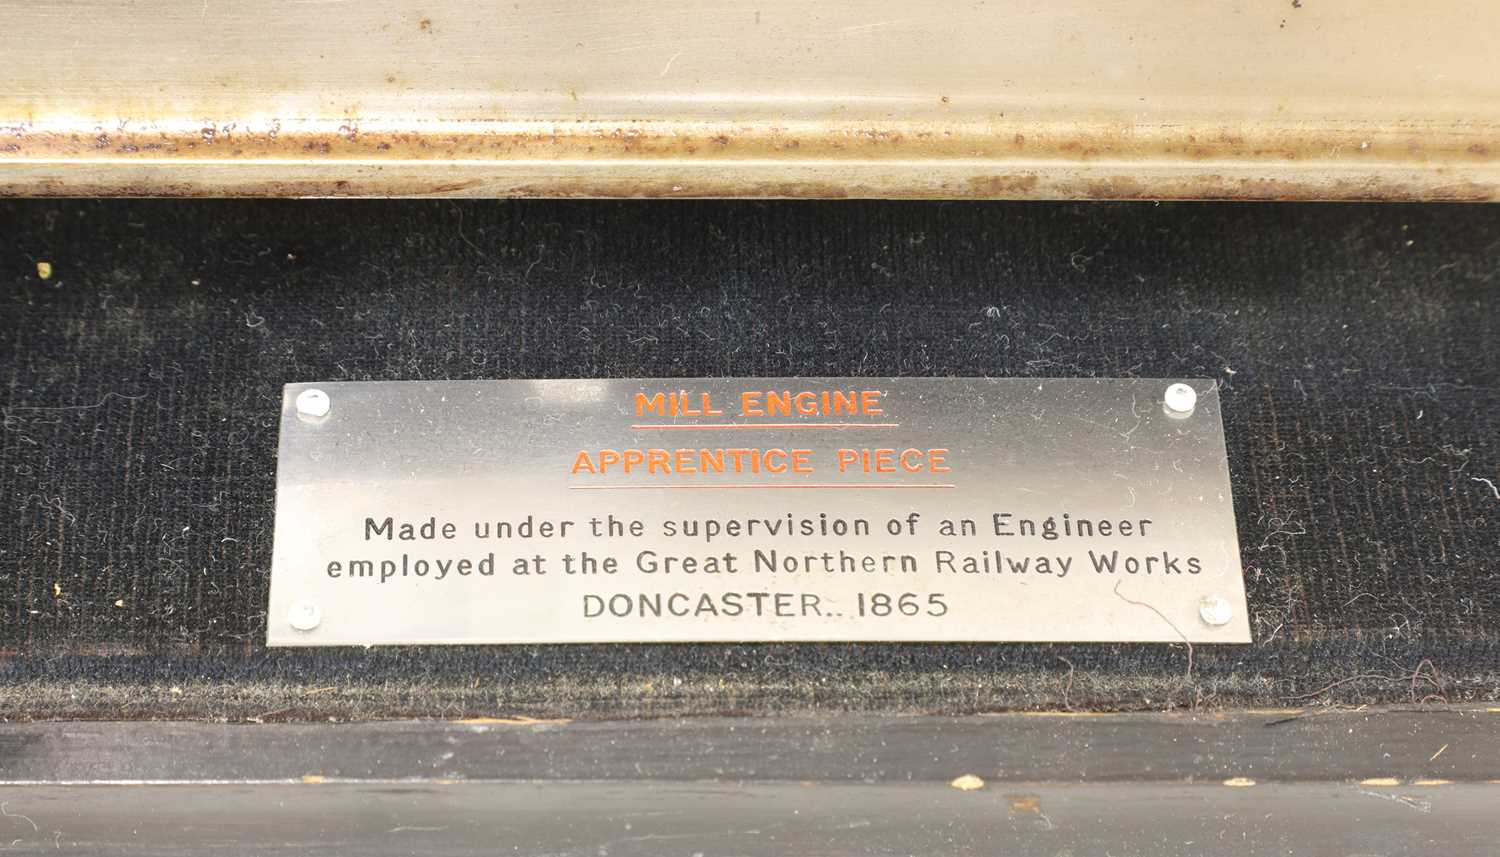 A mill engine apprentice piece, - Image 8 of 8